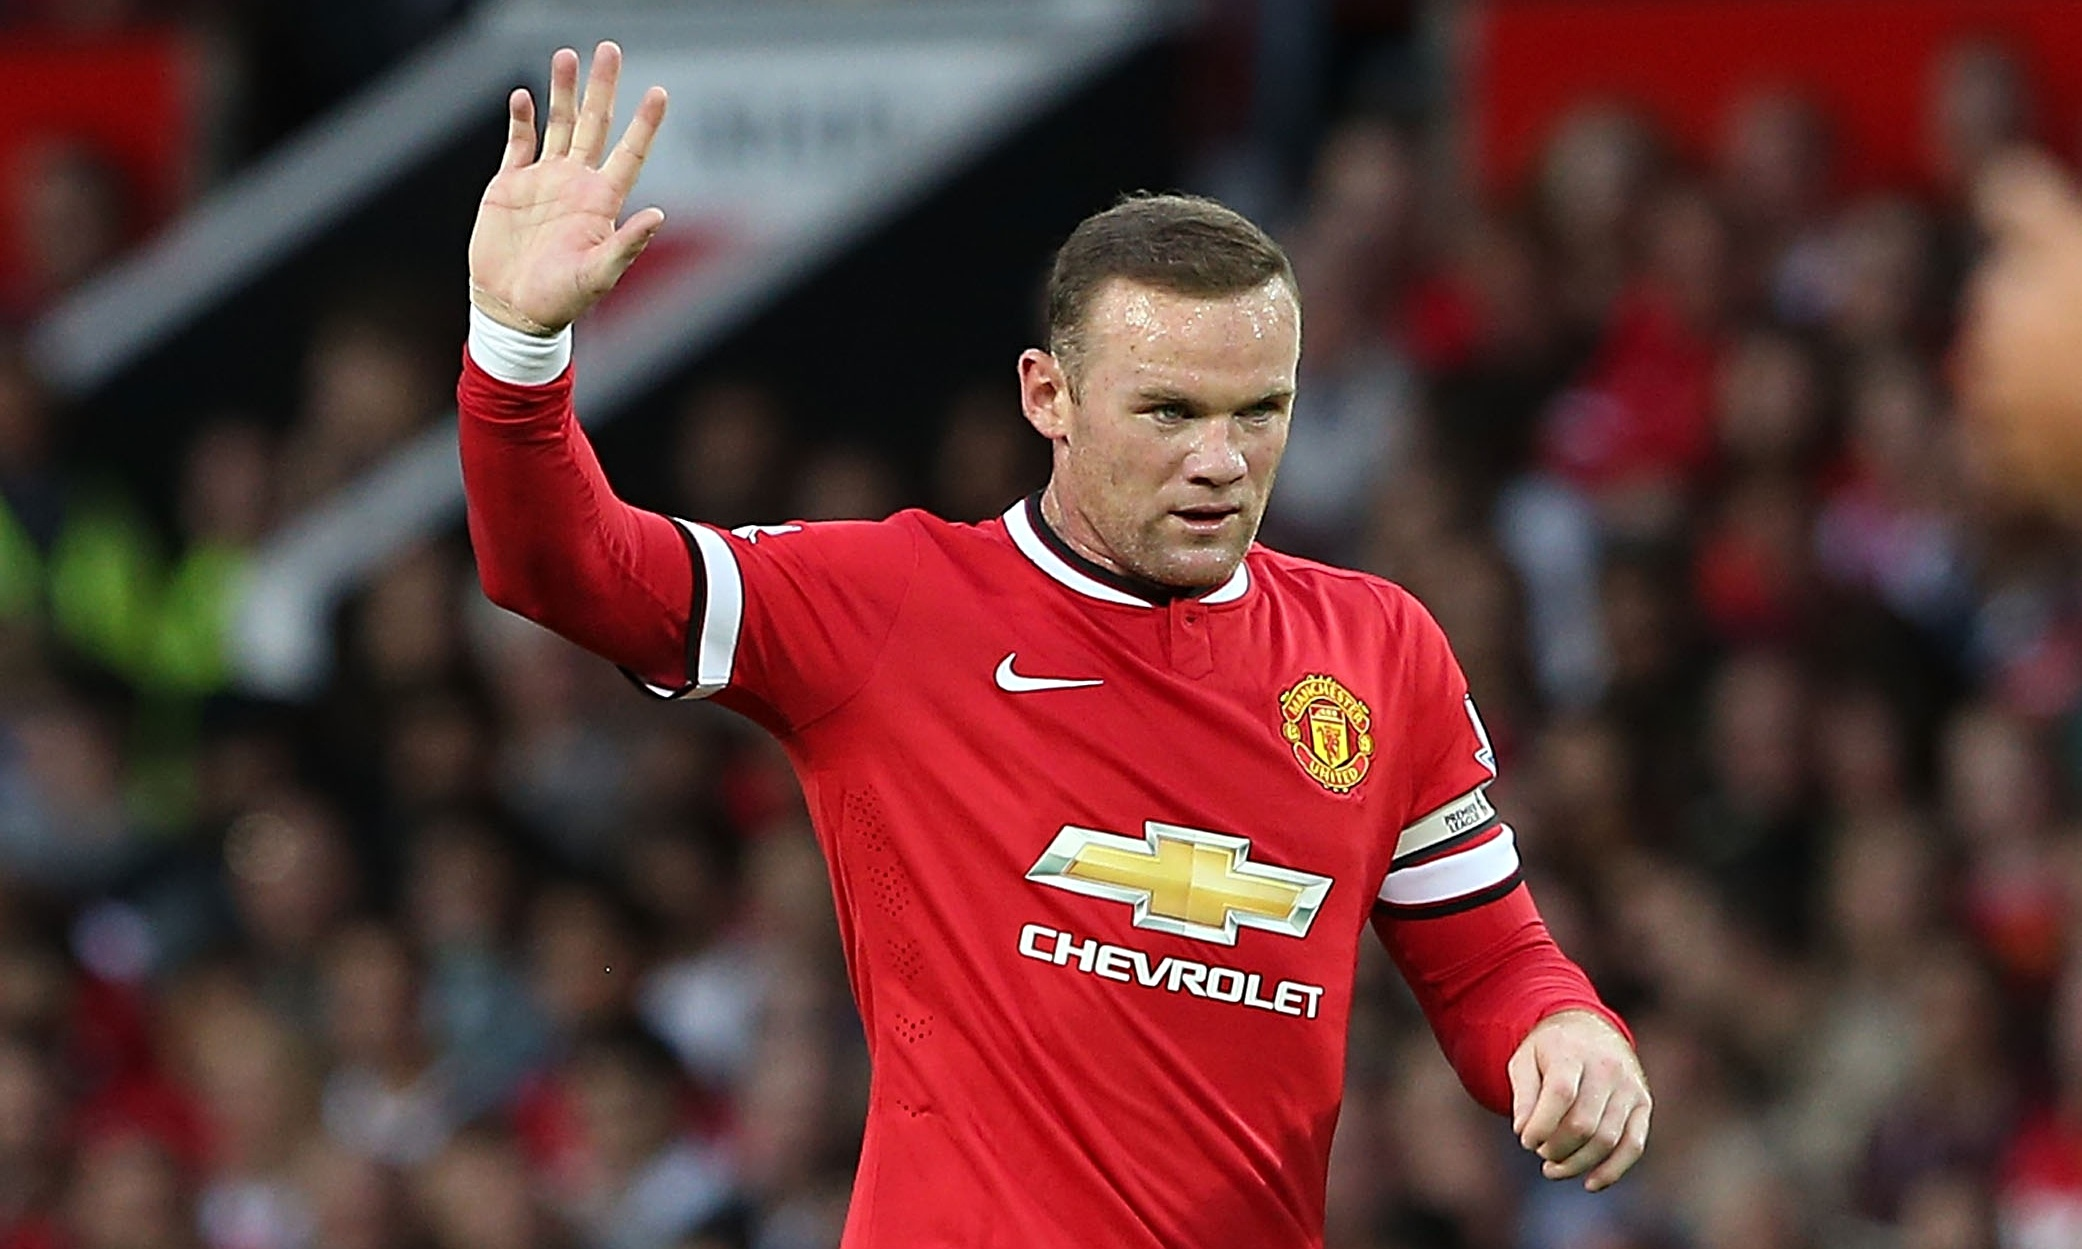 Wayne Rooney Manchester United 2014 Wayne Rooney named Manchester Uniteds club captain by Louis van